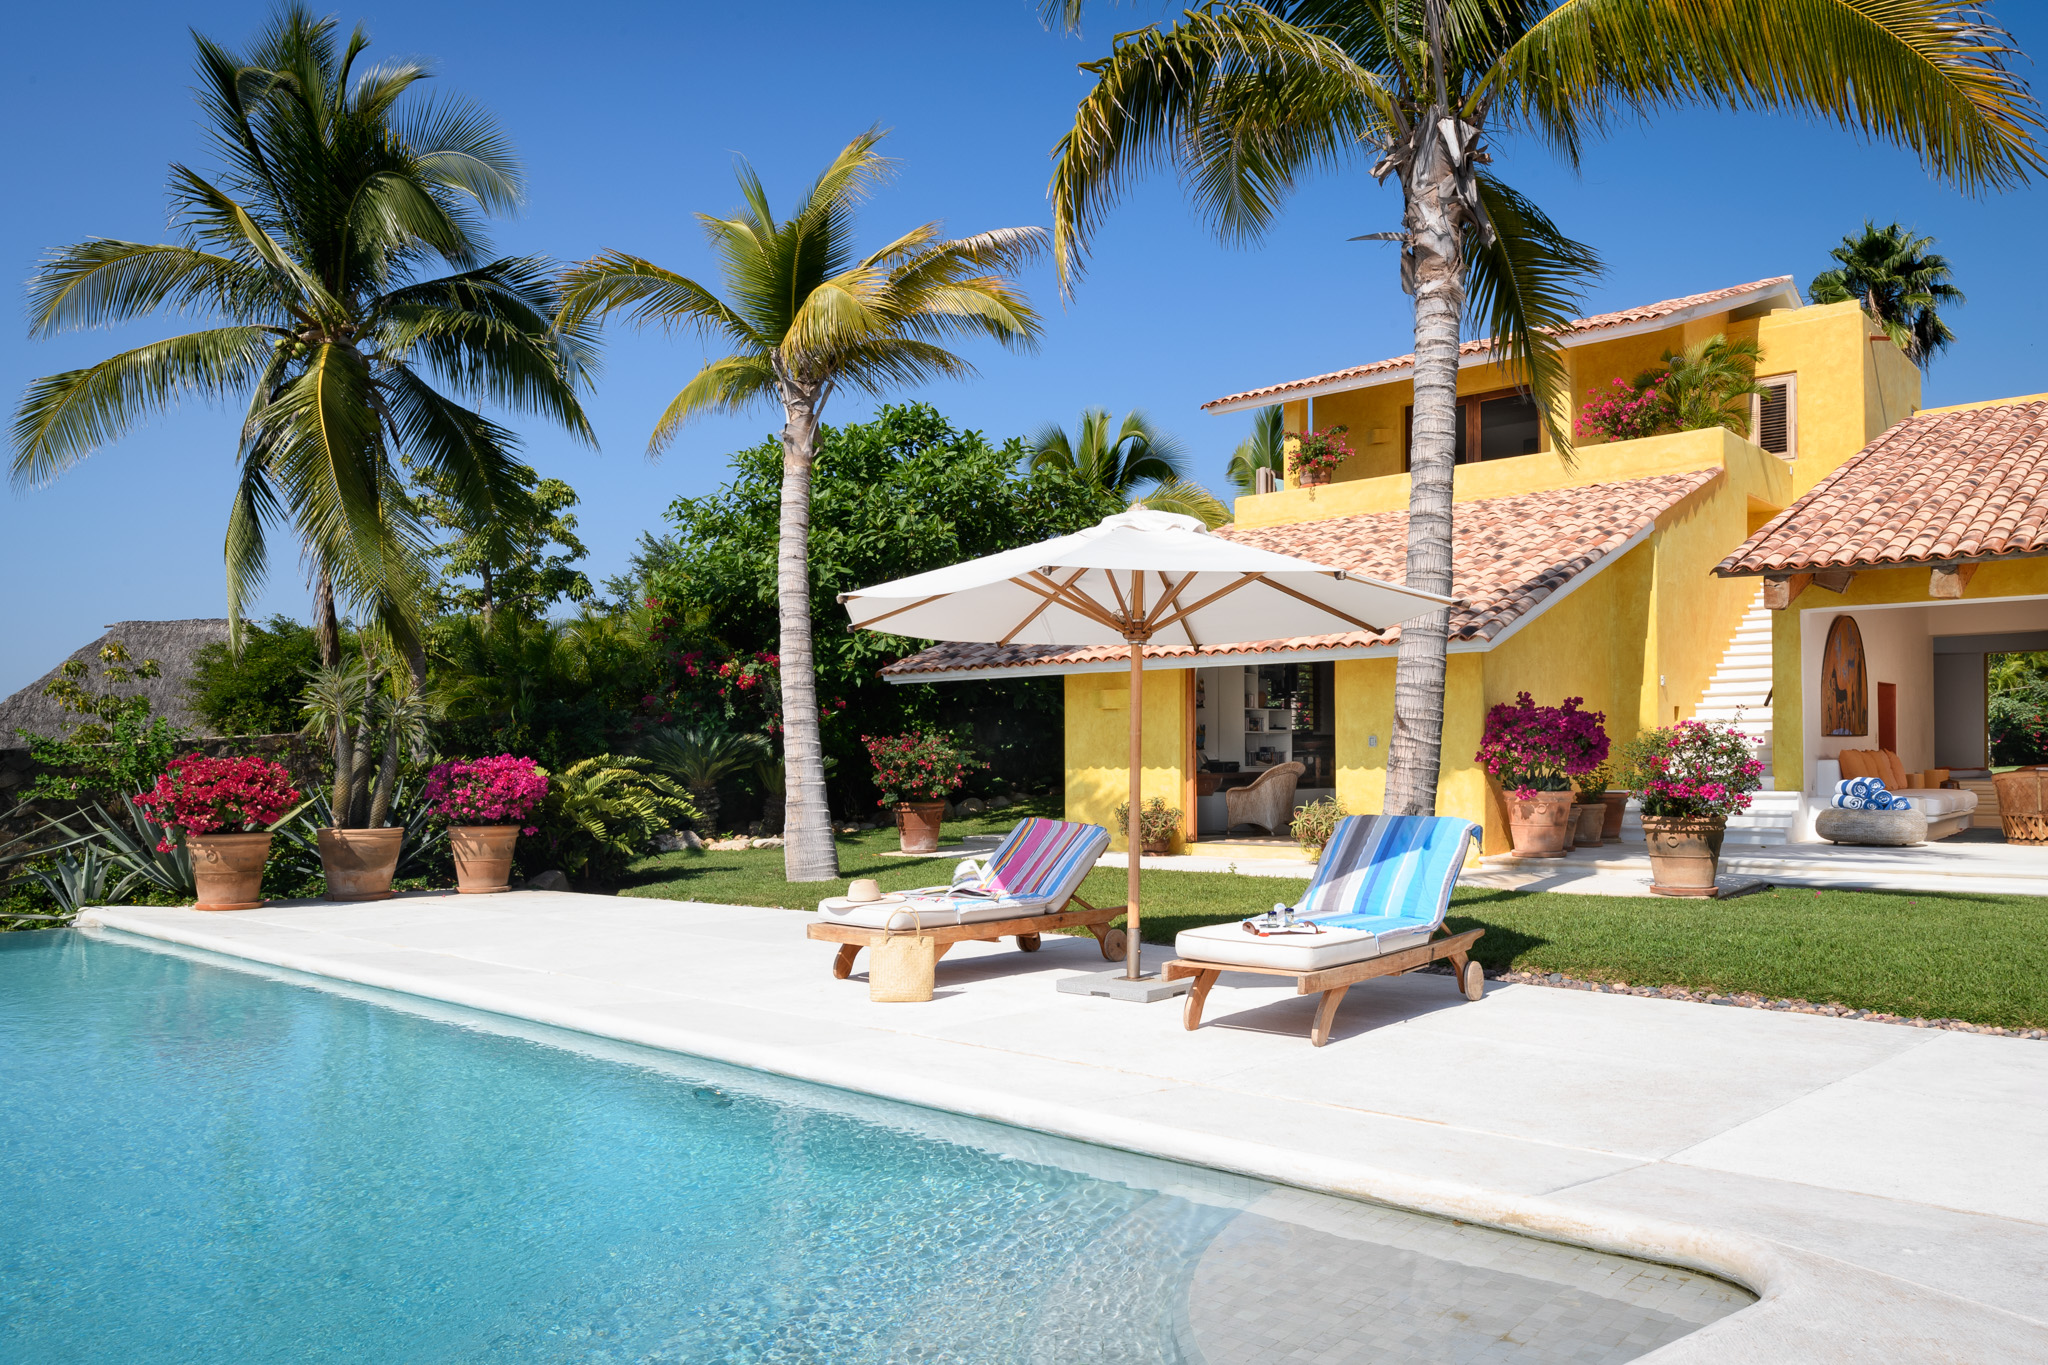 06-House from pool.jpg